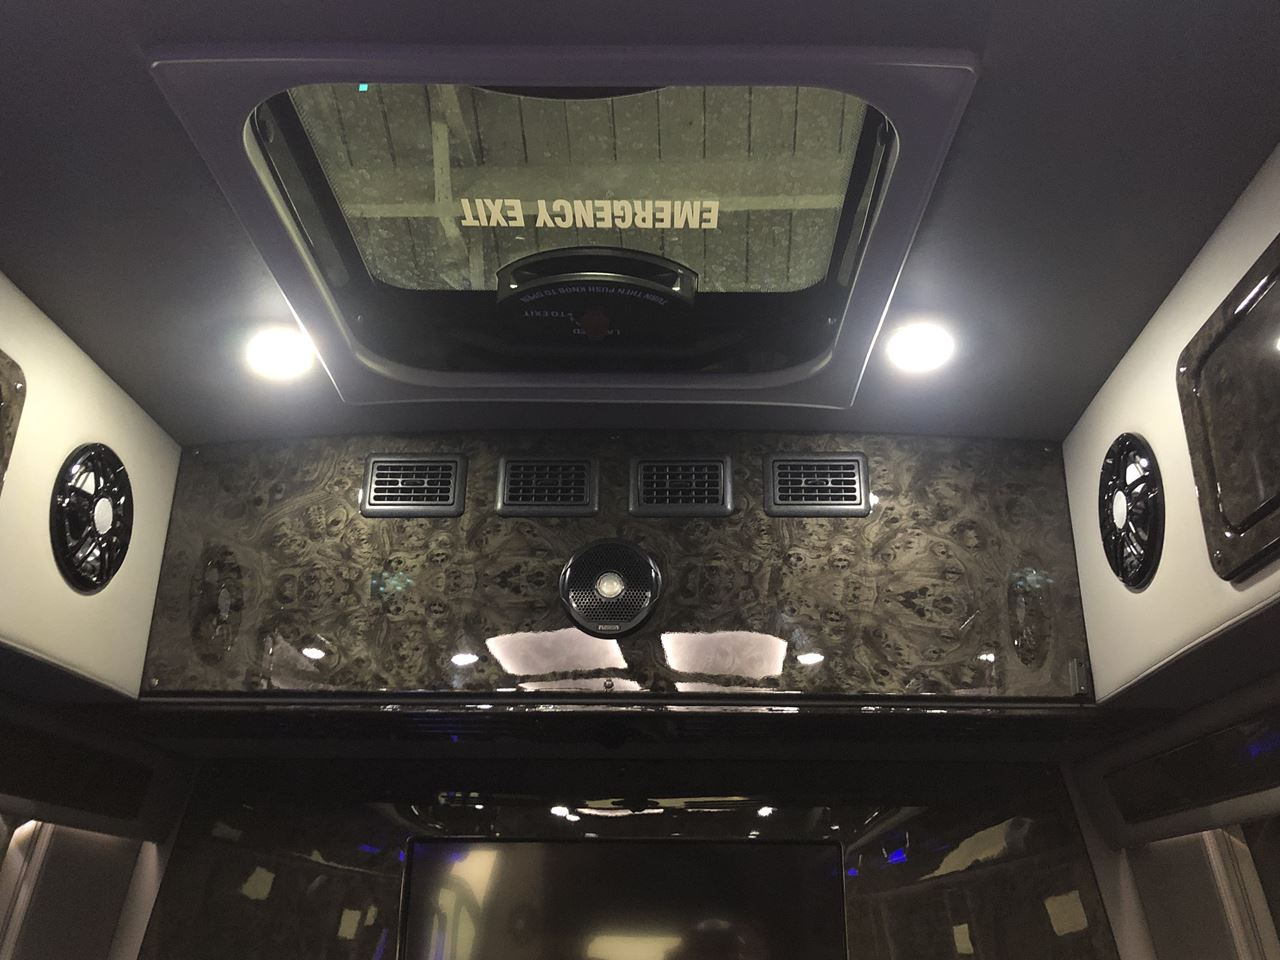 2019 Mercedes Benz Midwest Automotive Sprinter Limousine 21 19